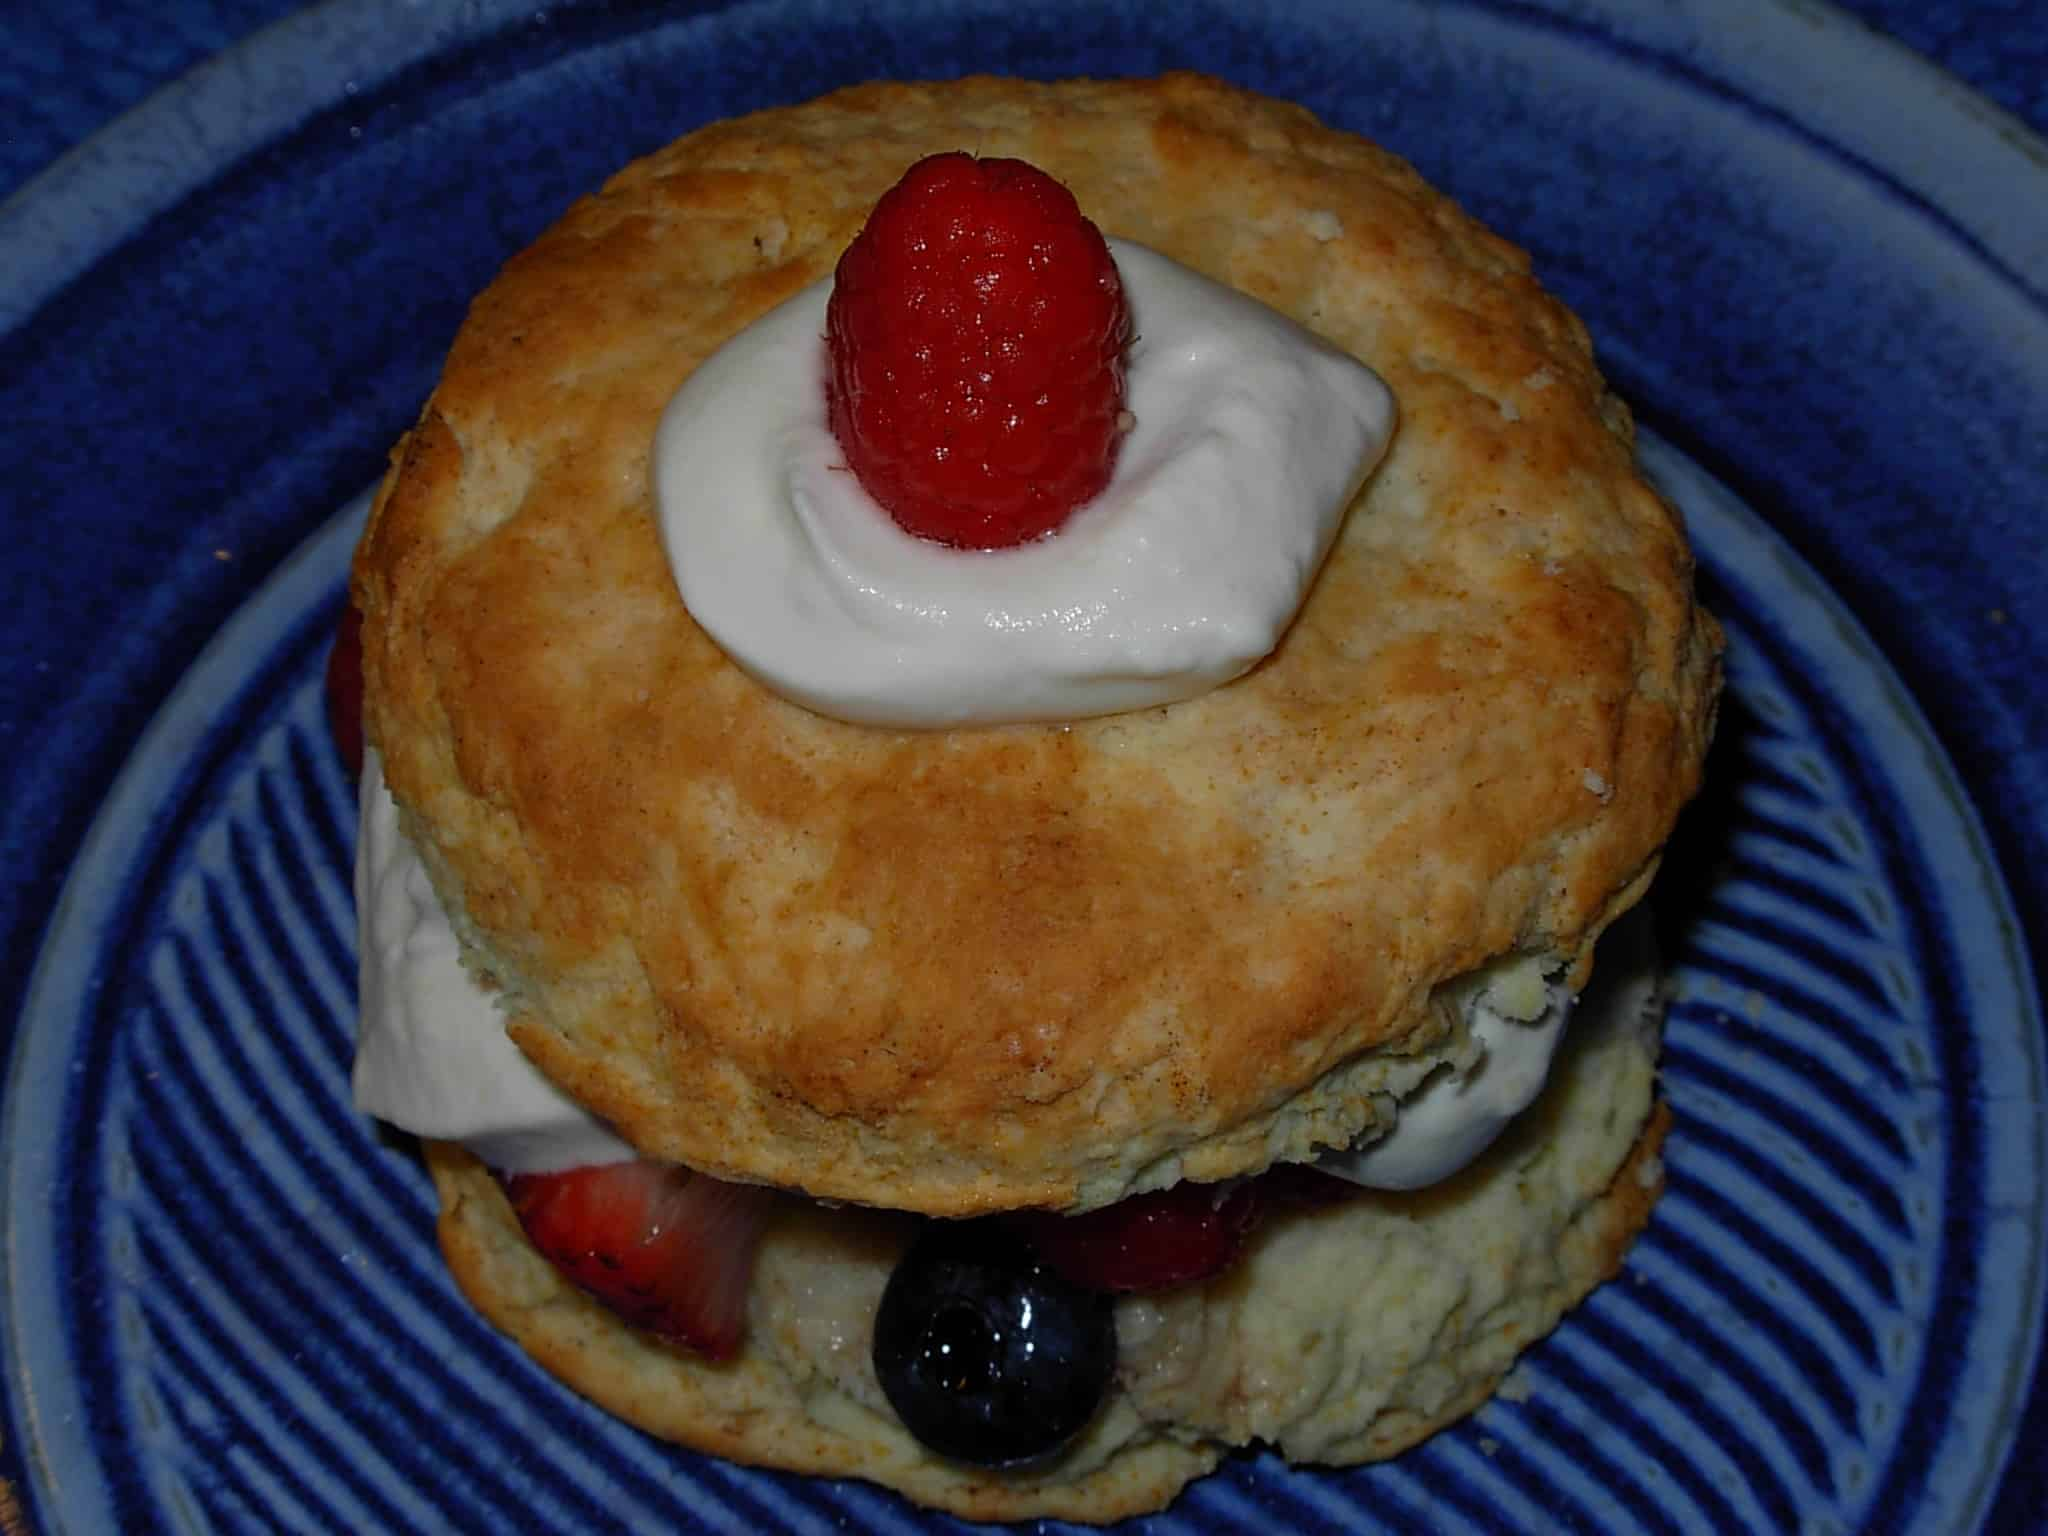 Berries Romanoff with Shortcake